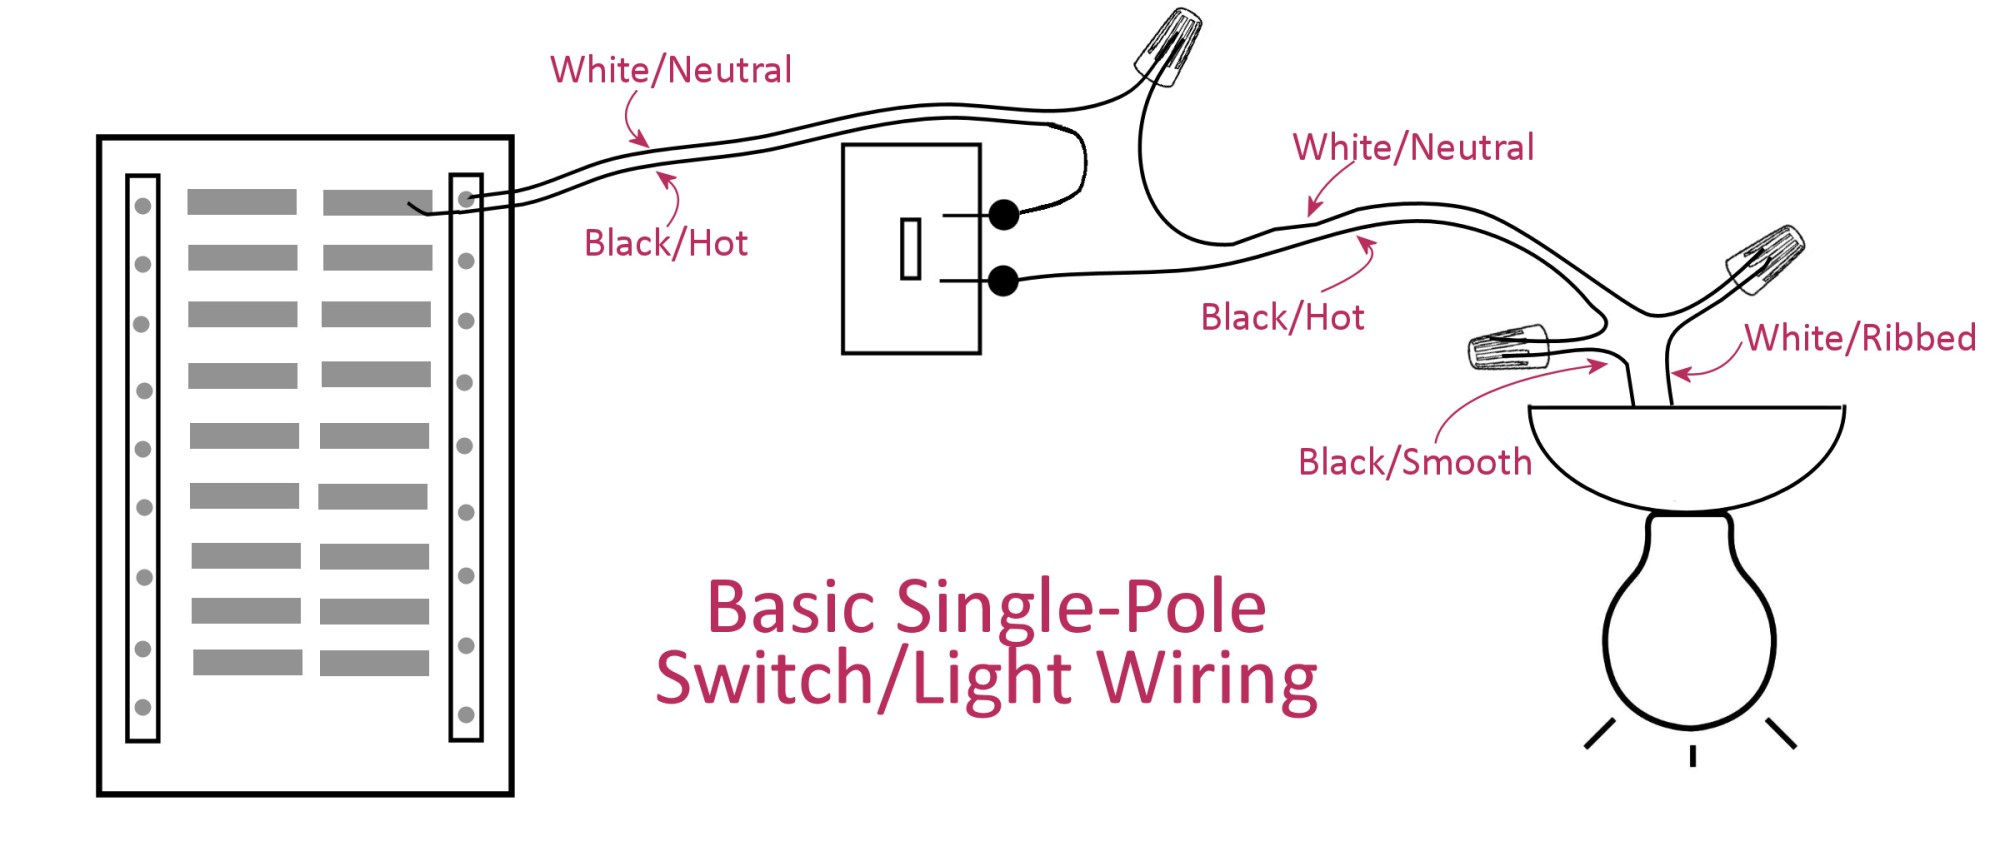 hight resolution of wiring in a single light switch wiring diagram recentwiring in a single light switch wiring diagram